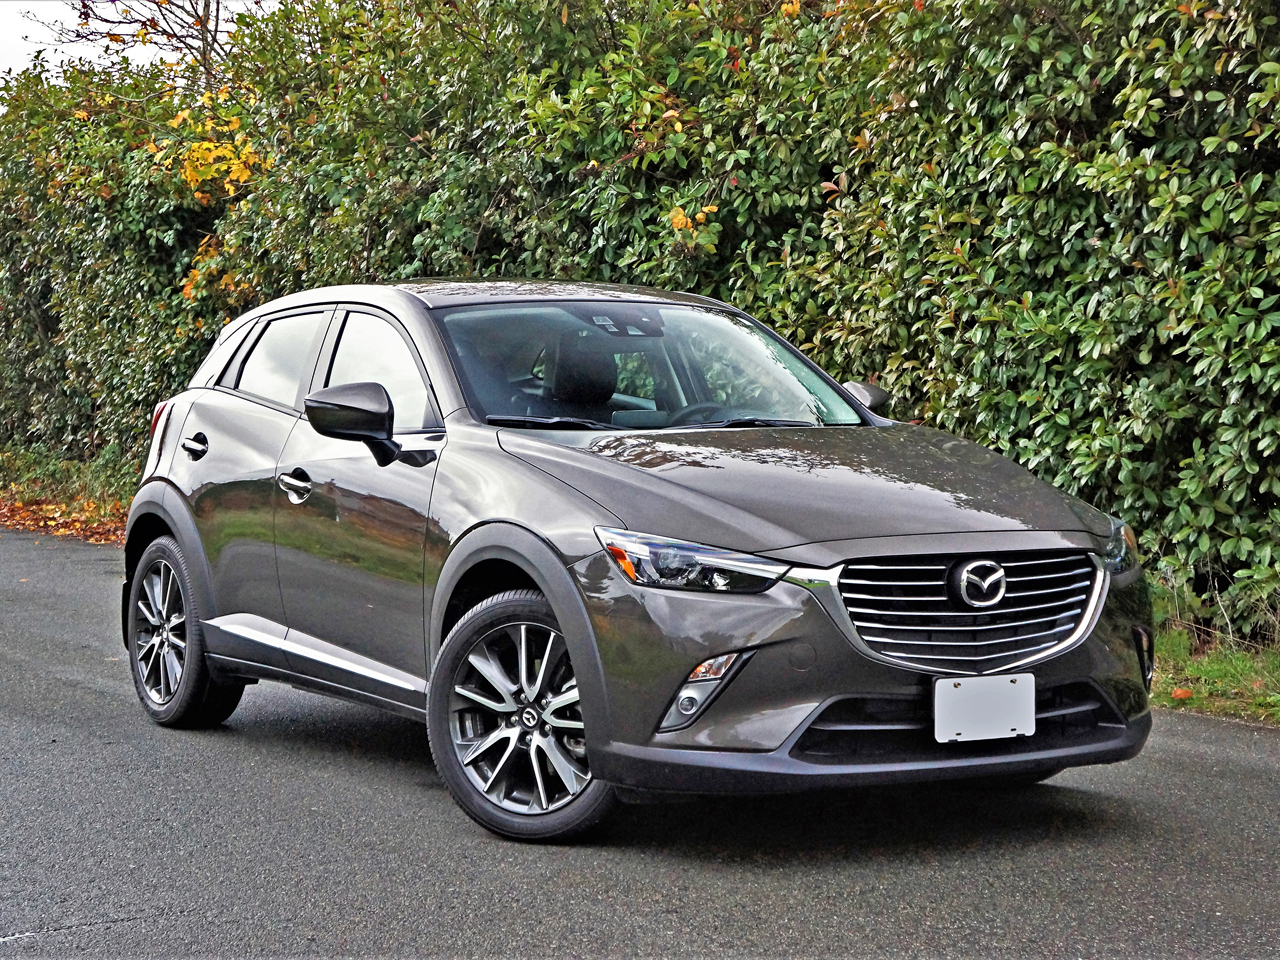 2017 Mazda Cx 3 Gt Awd Road Test